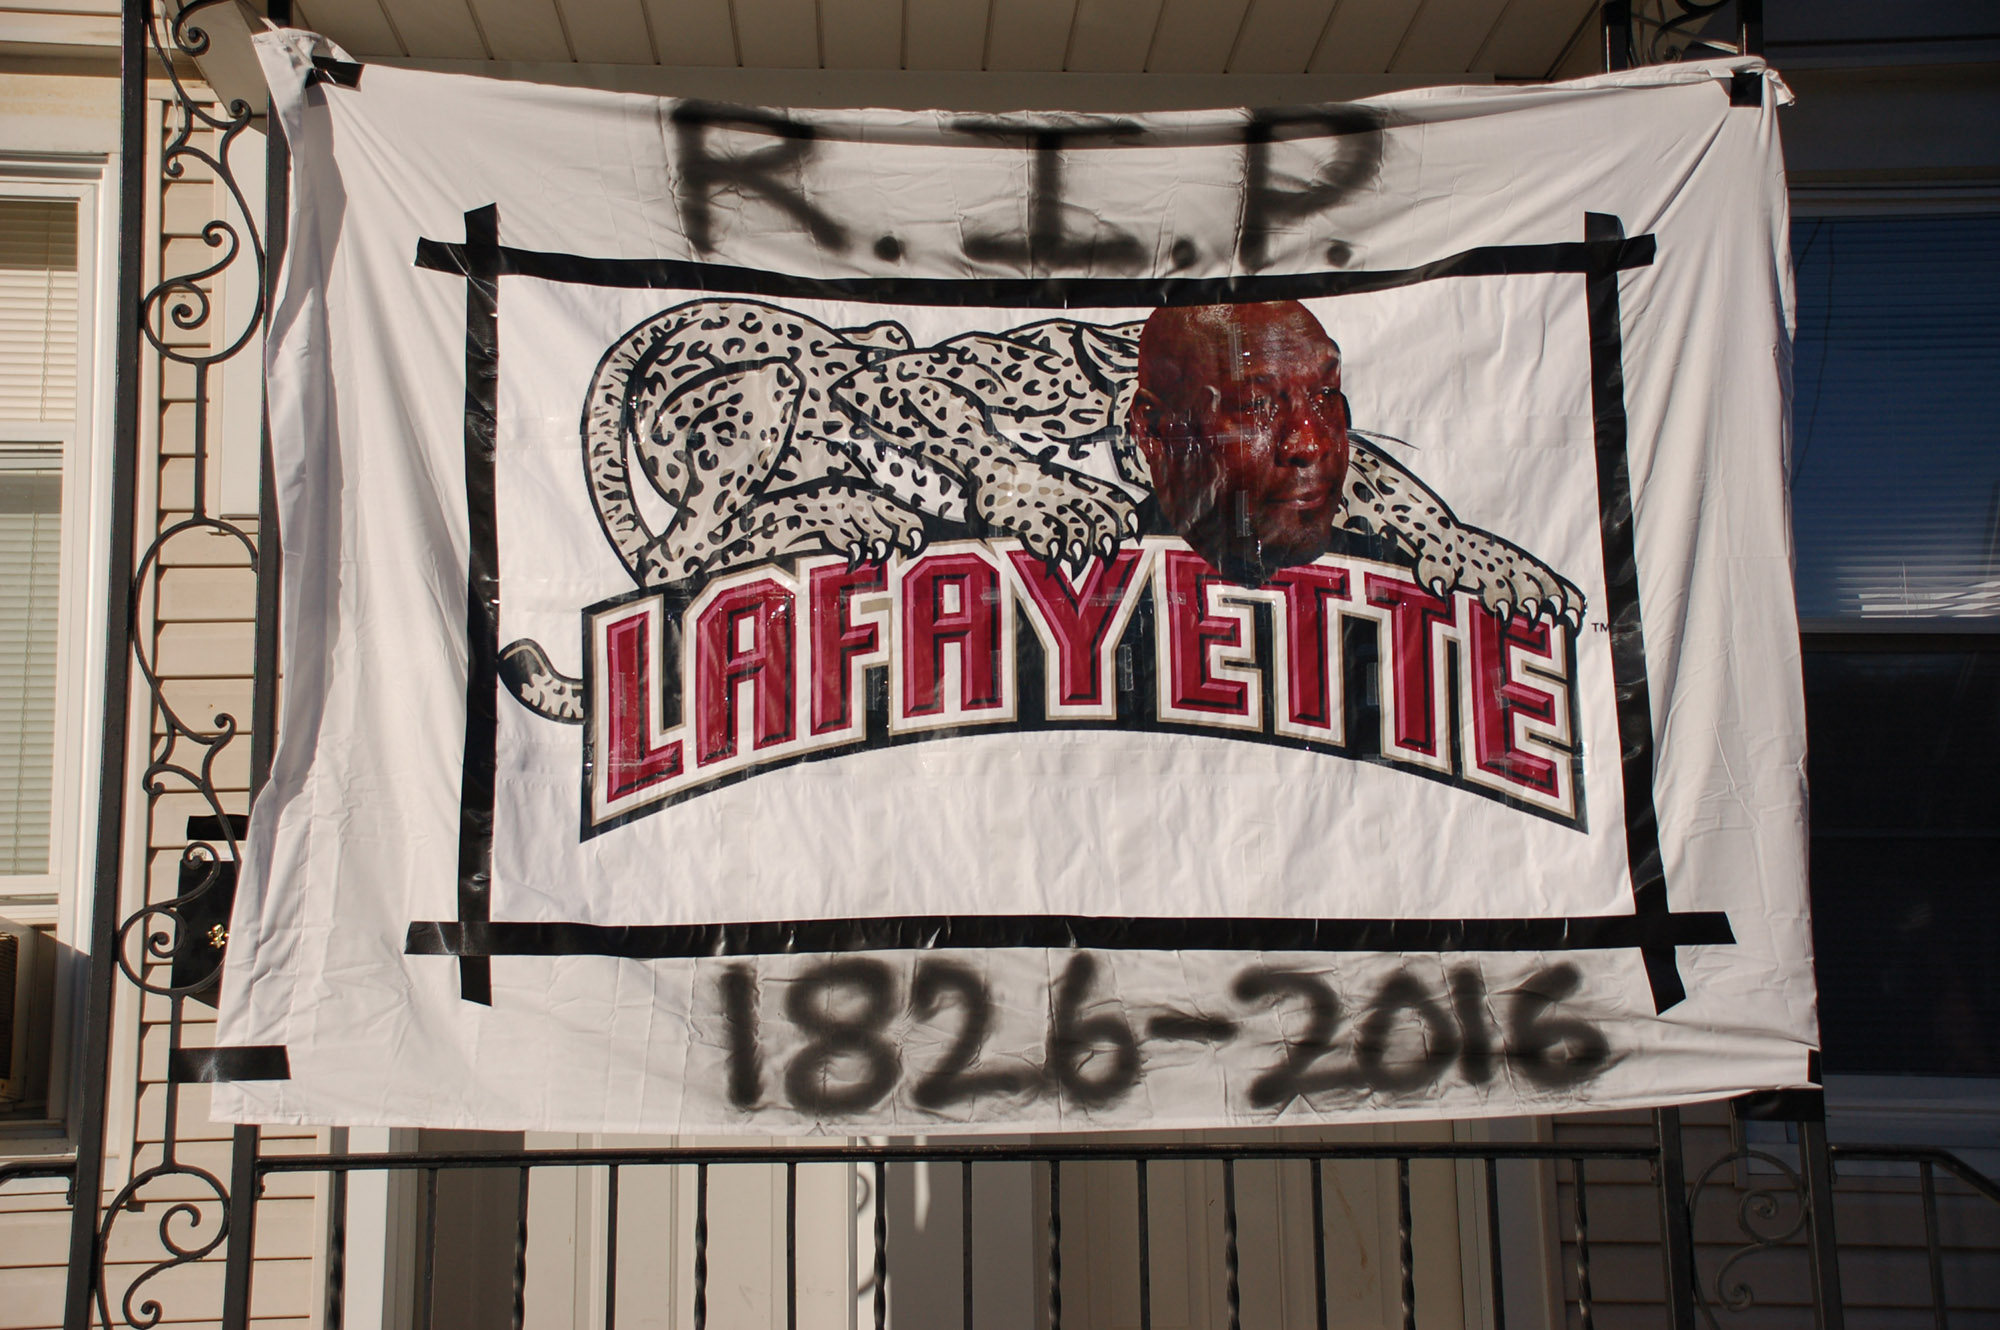 "A sign reading ""R.I.P Lafayette 1826-2016"" hangs on a house at East Fifth Street on Nov. 18, 2016. The crying Jordan is a popular meme on the internet. (Gaby Morera/B&W Staff)"